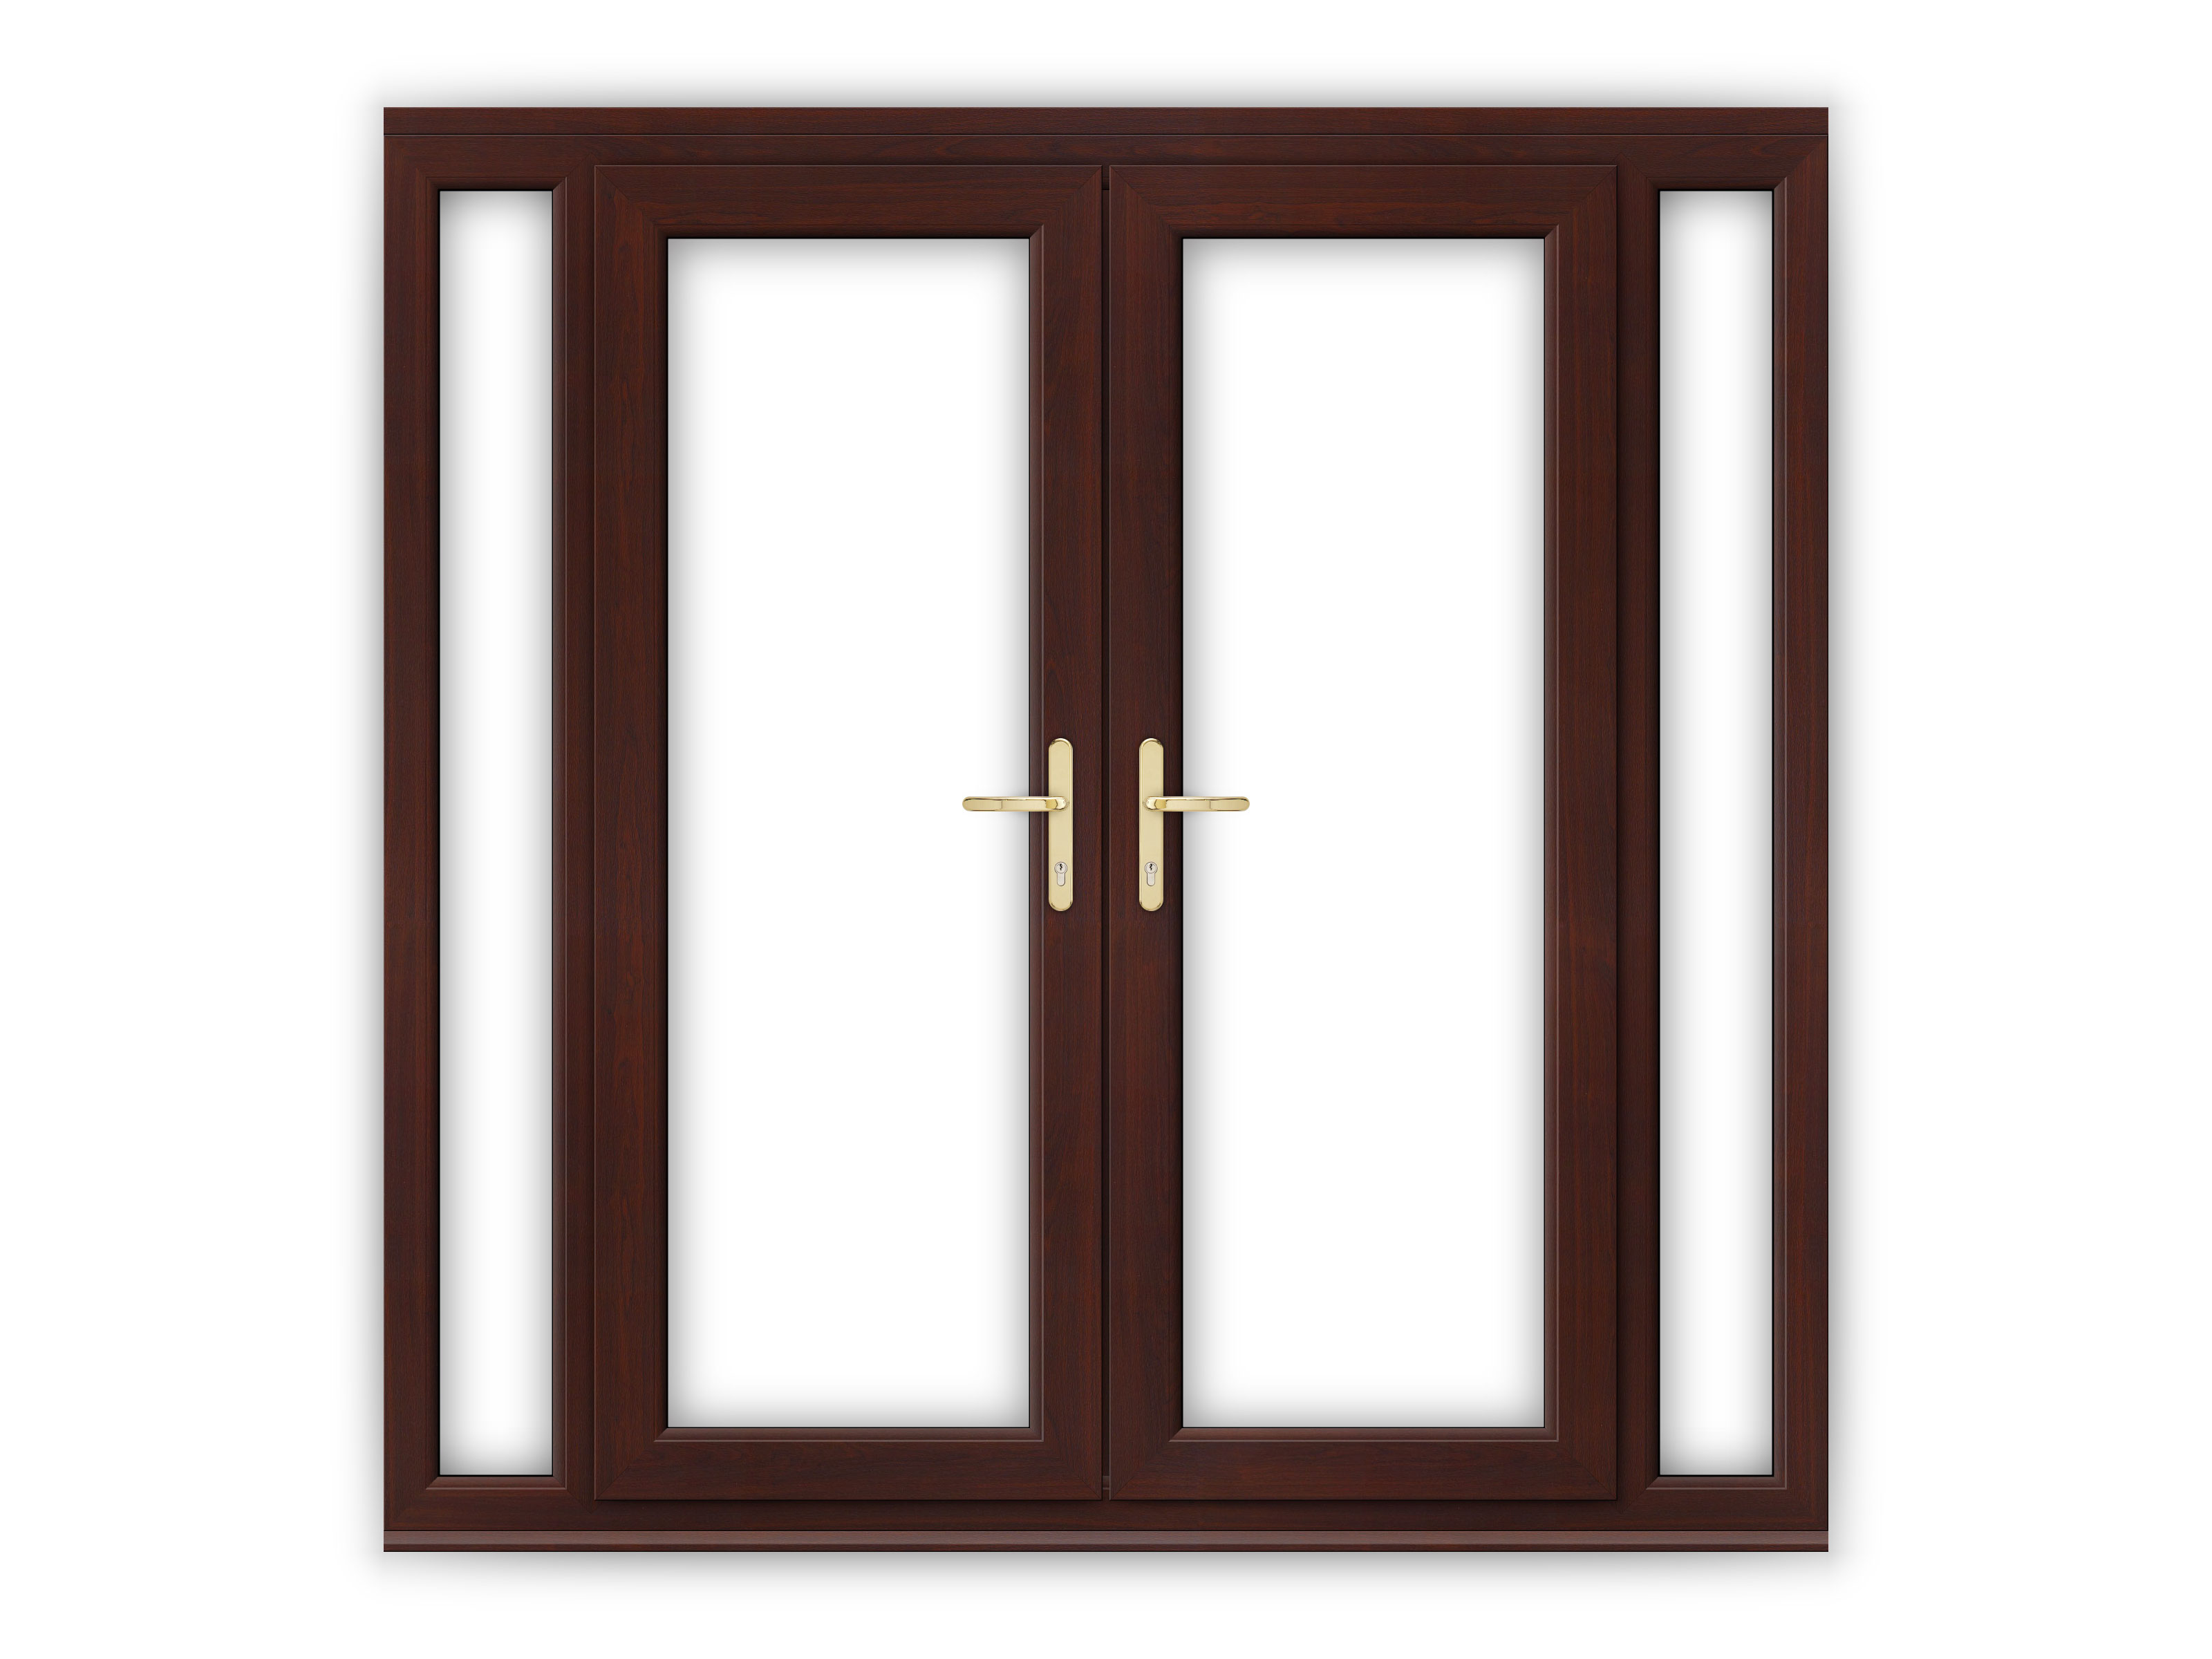 5ft rosewood upvc french doors with narrow side panels for Five foot french doors